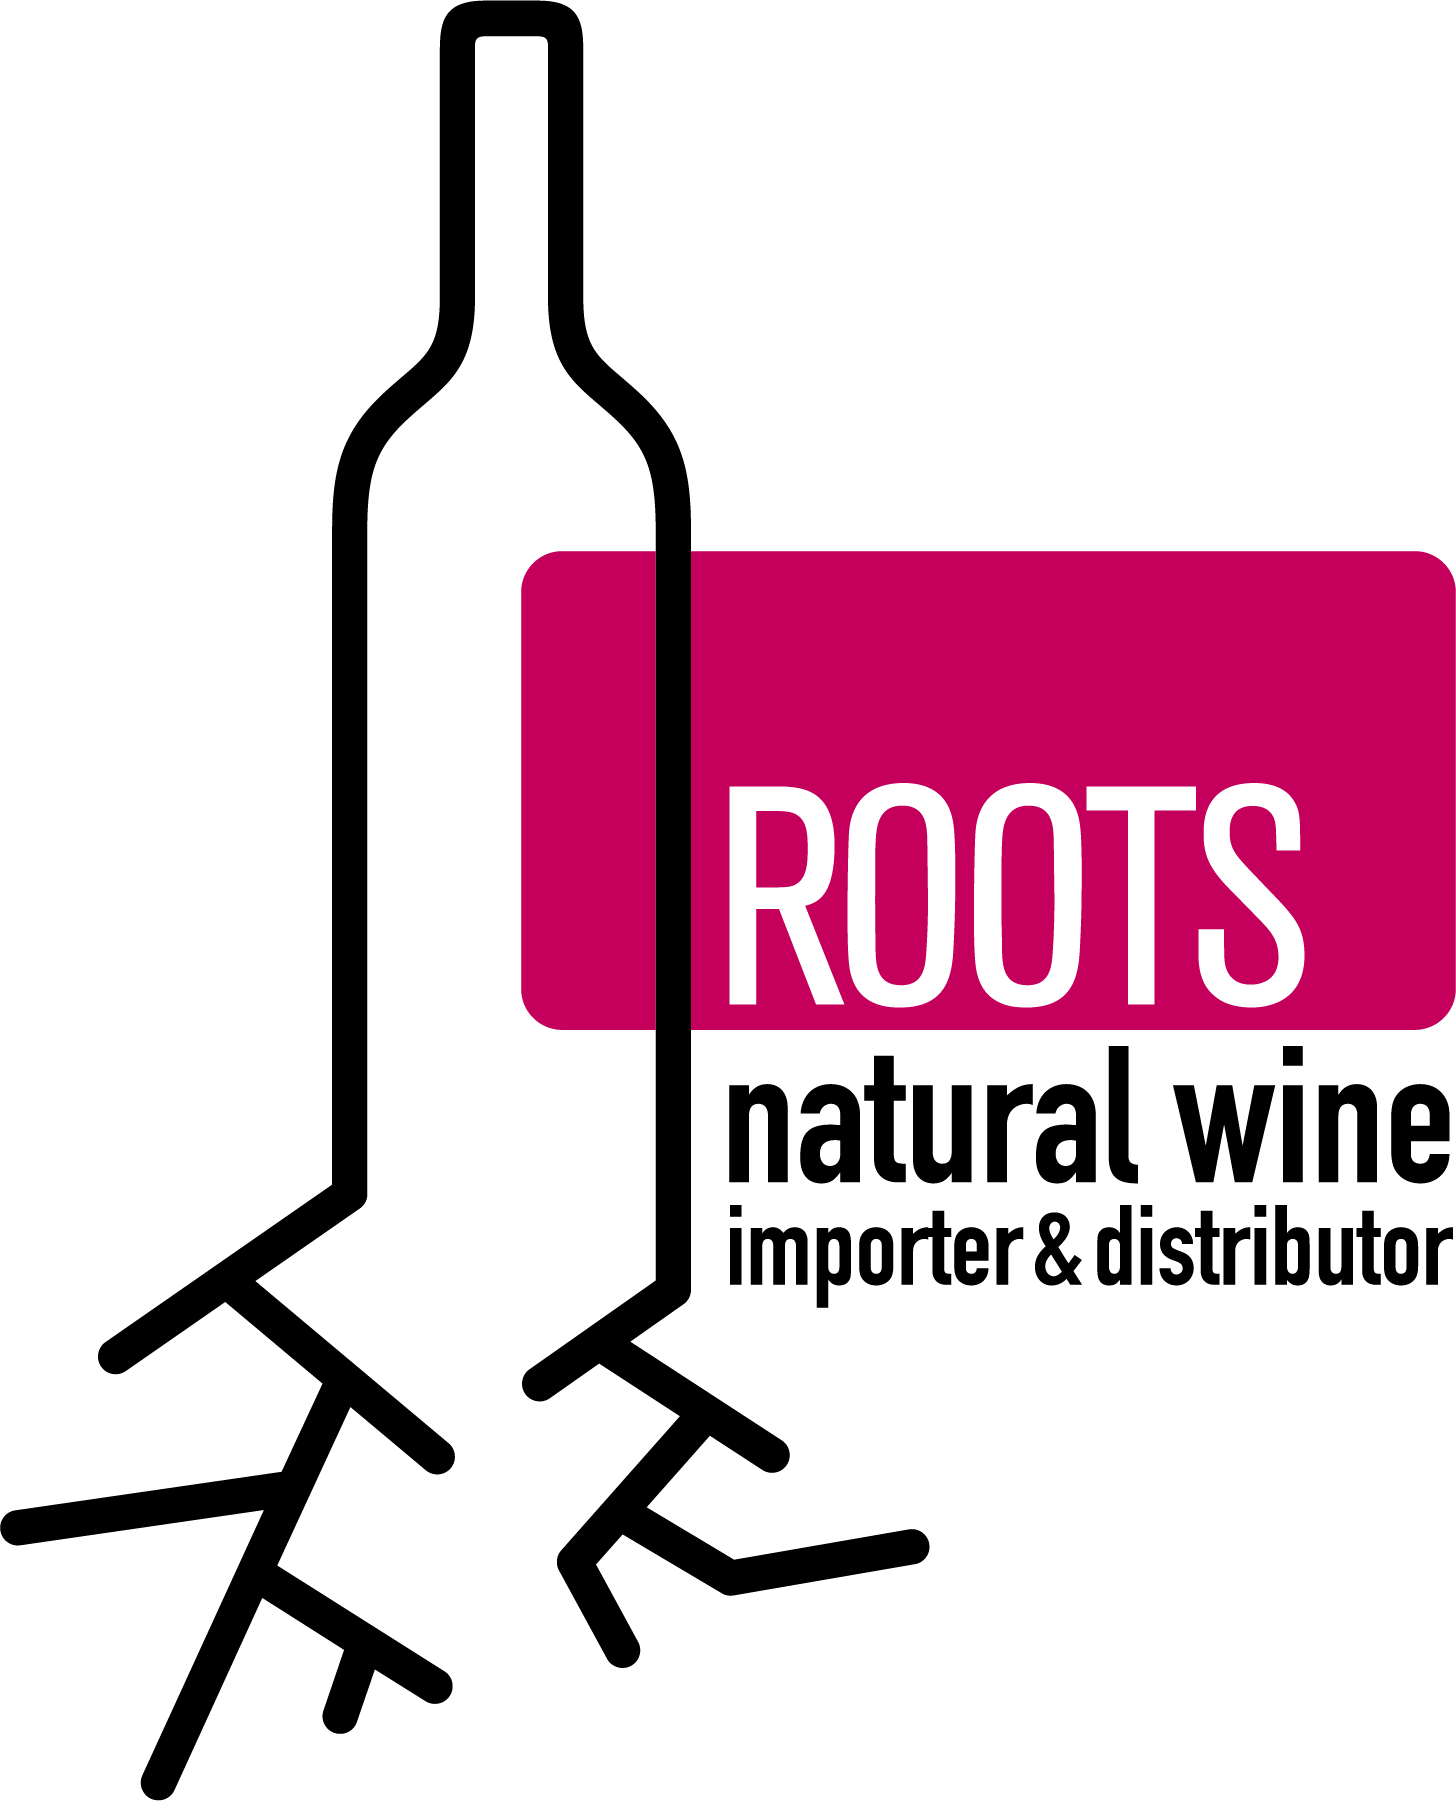 Roots – Natural Wine Importer and distributor in Malta